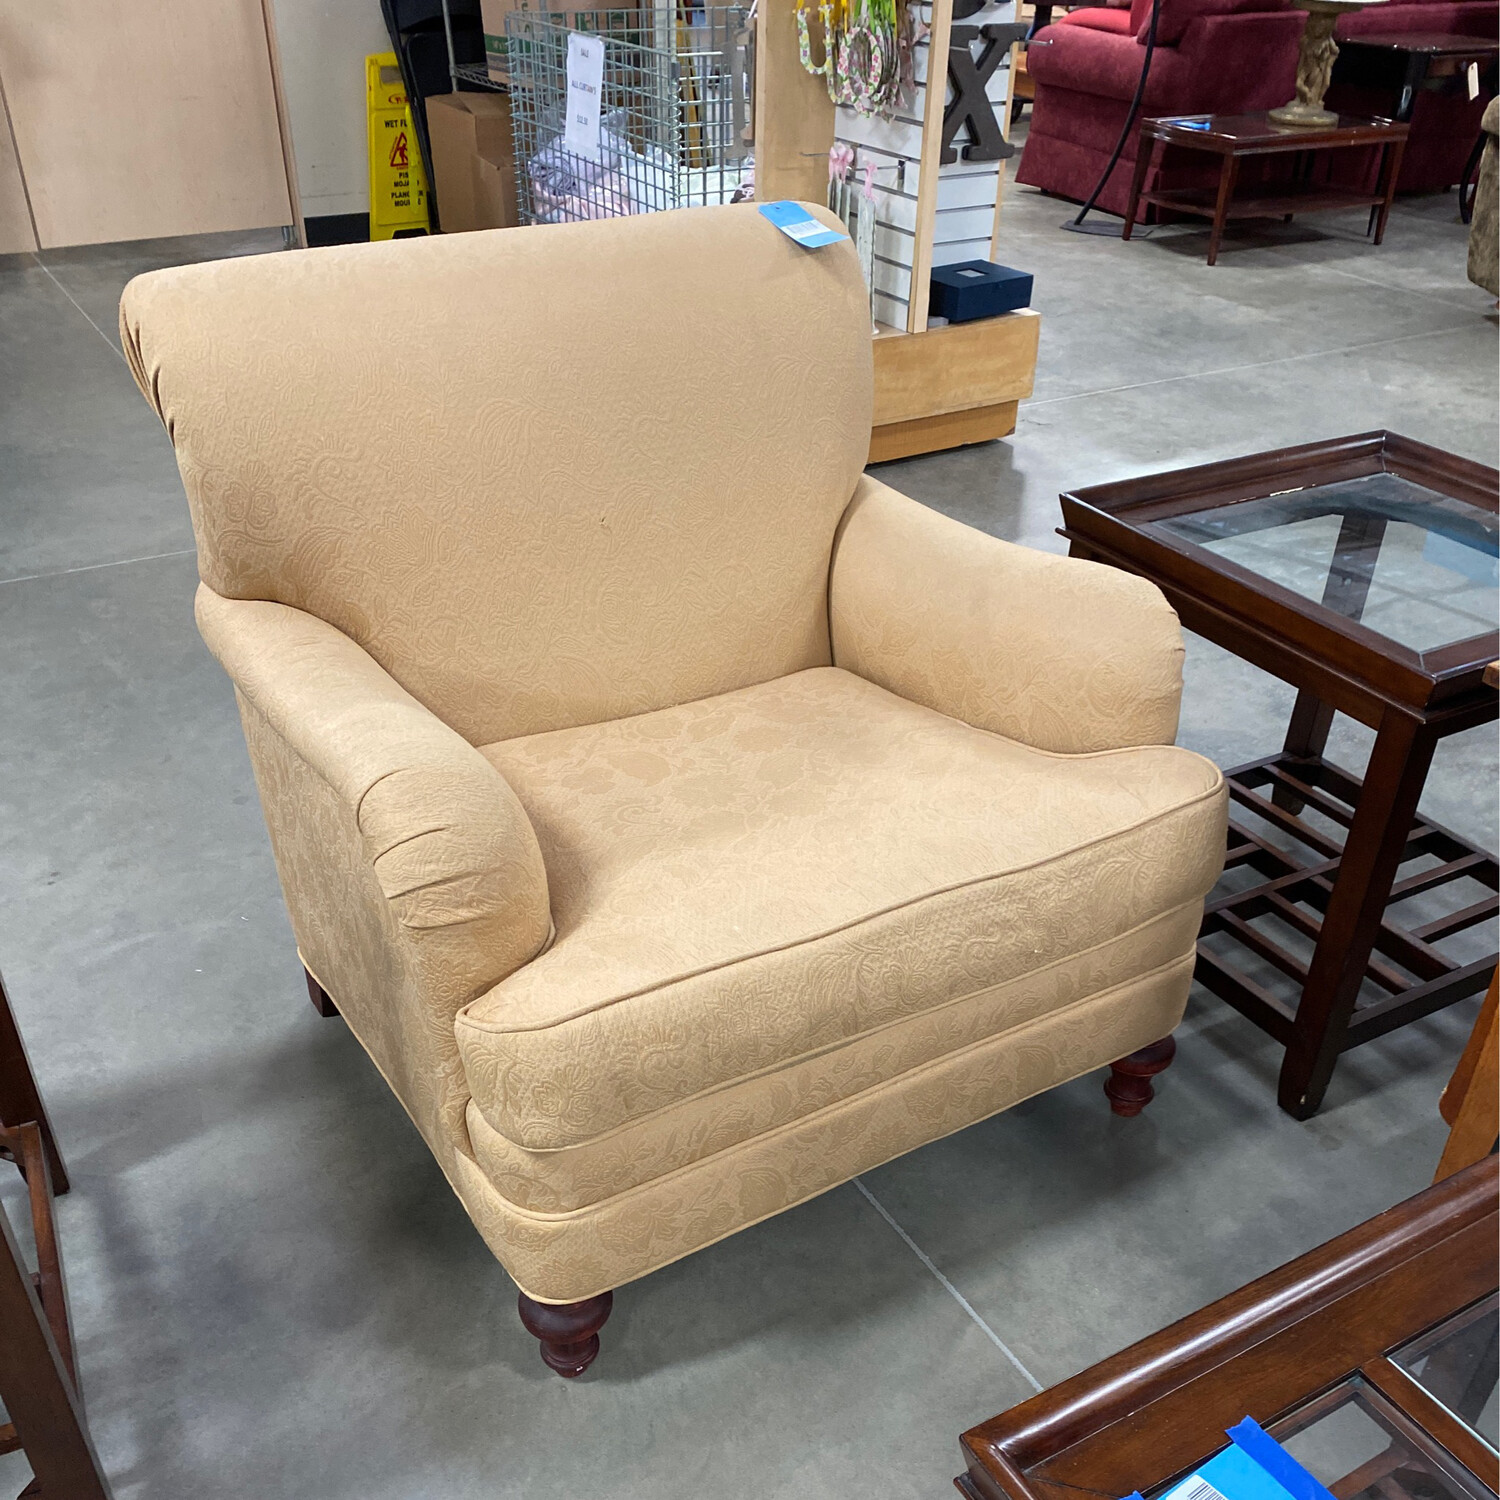 BEIGE/CREAME COLOR CHAIR